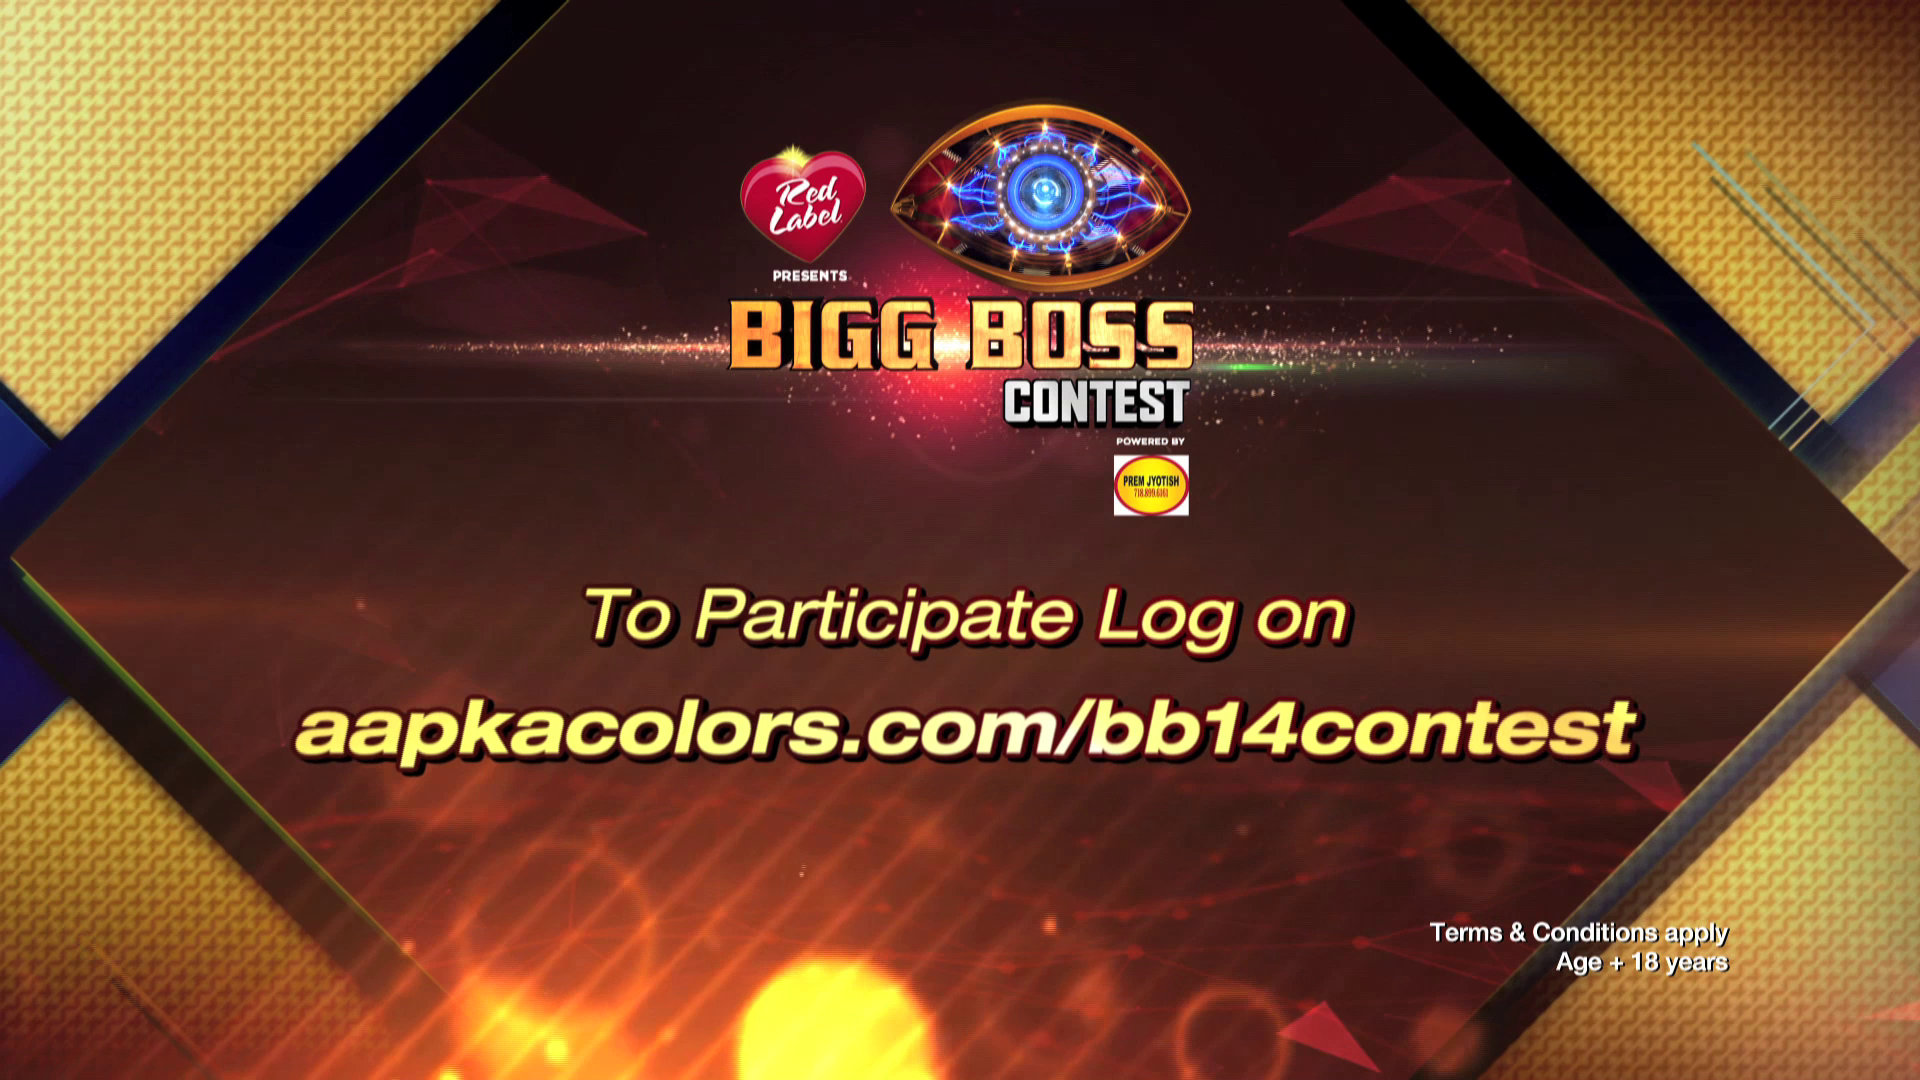 Bigg Boss 14 Every Day ET 8:00pm PT 9:00pm on Aapka Colors